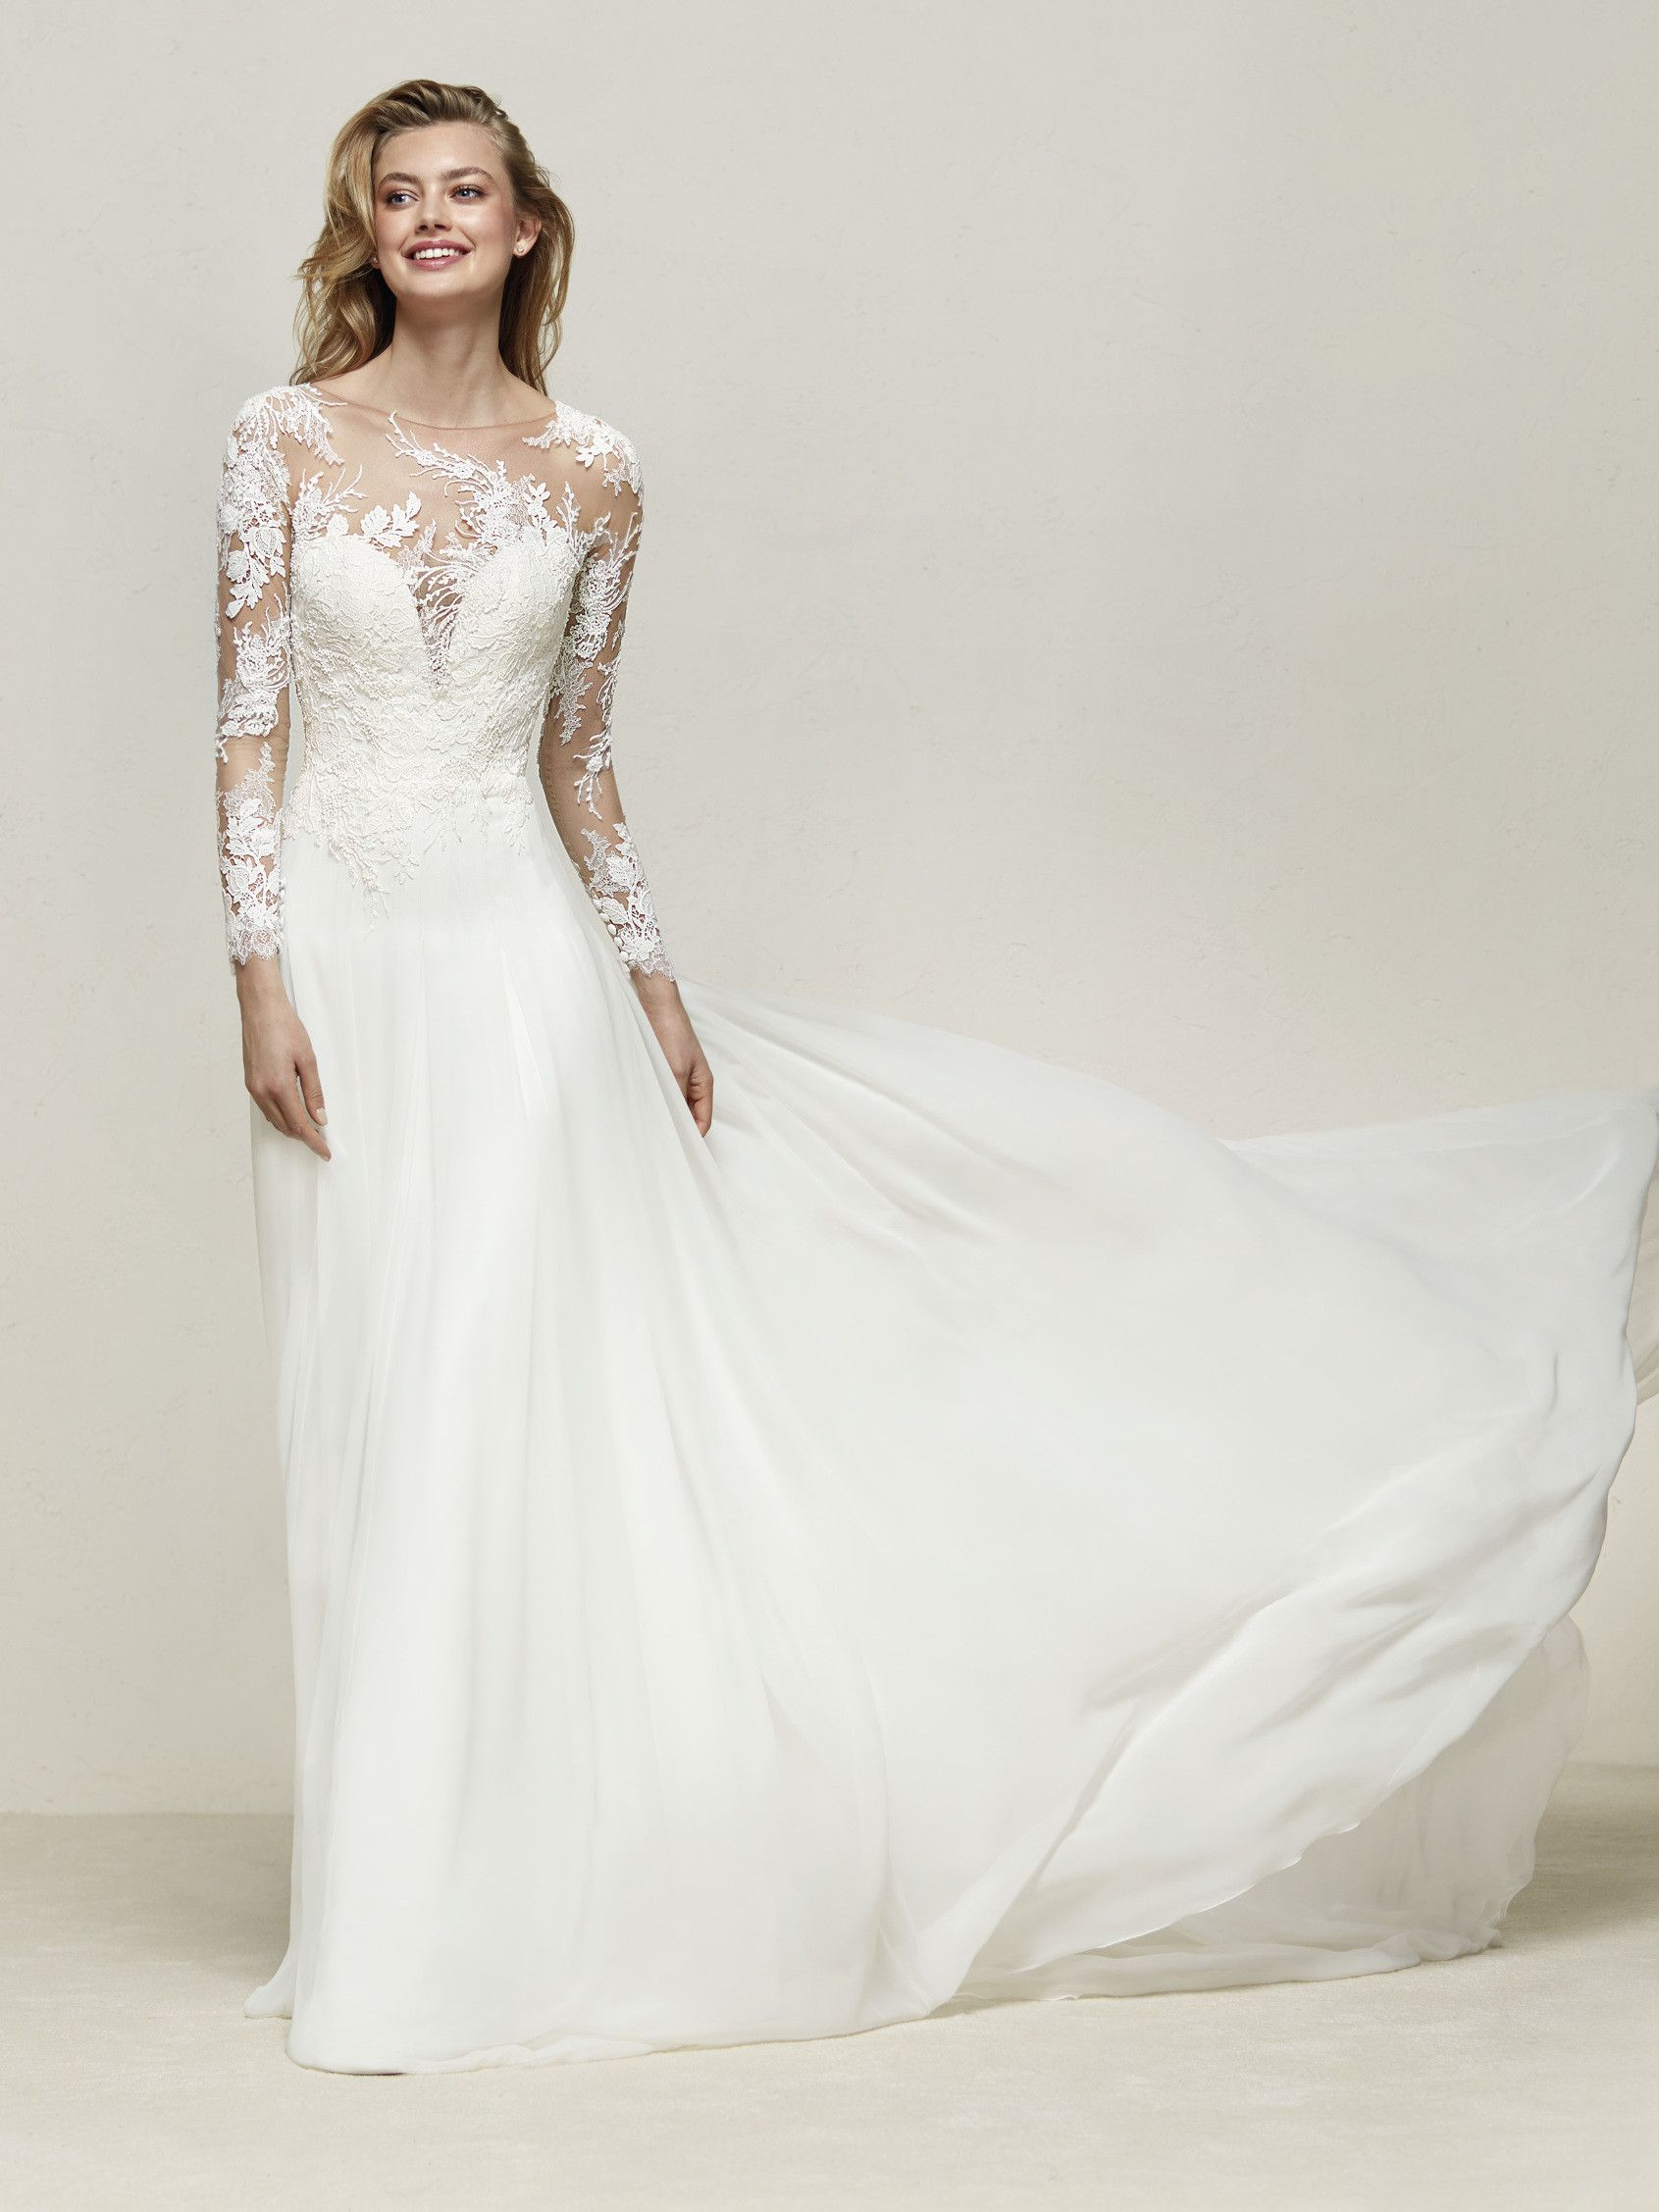 Cool Classic Long Sleeve A line Lace Embroidered DRESAL Pronovias Bridal Dress